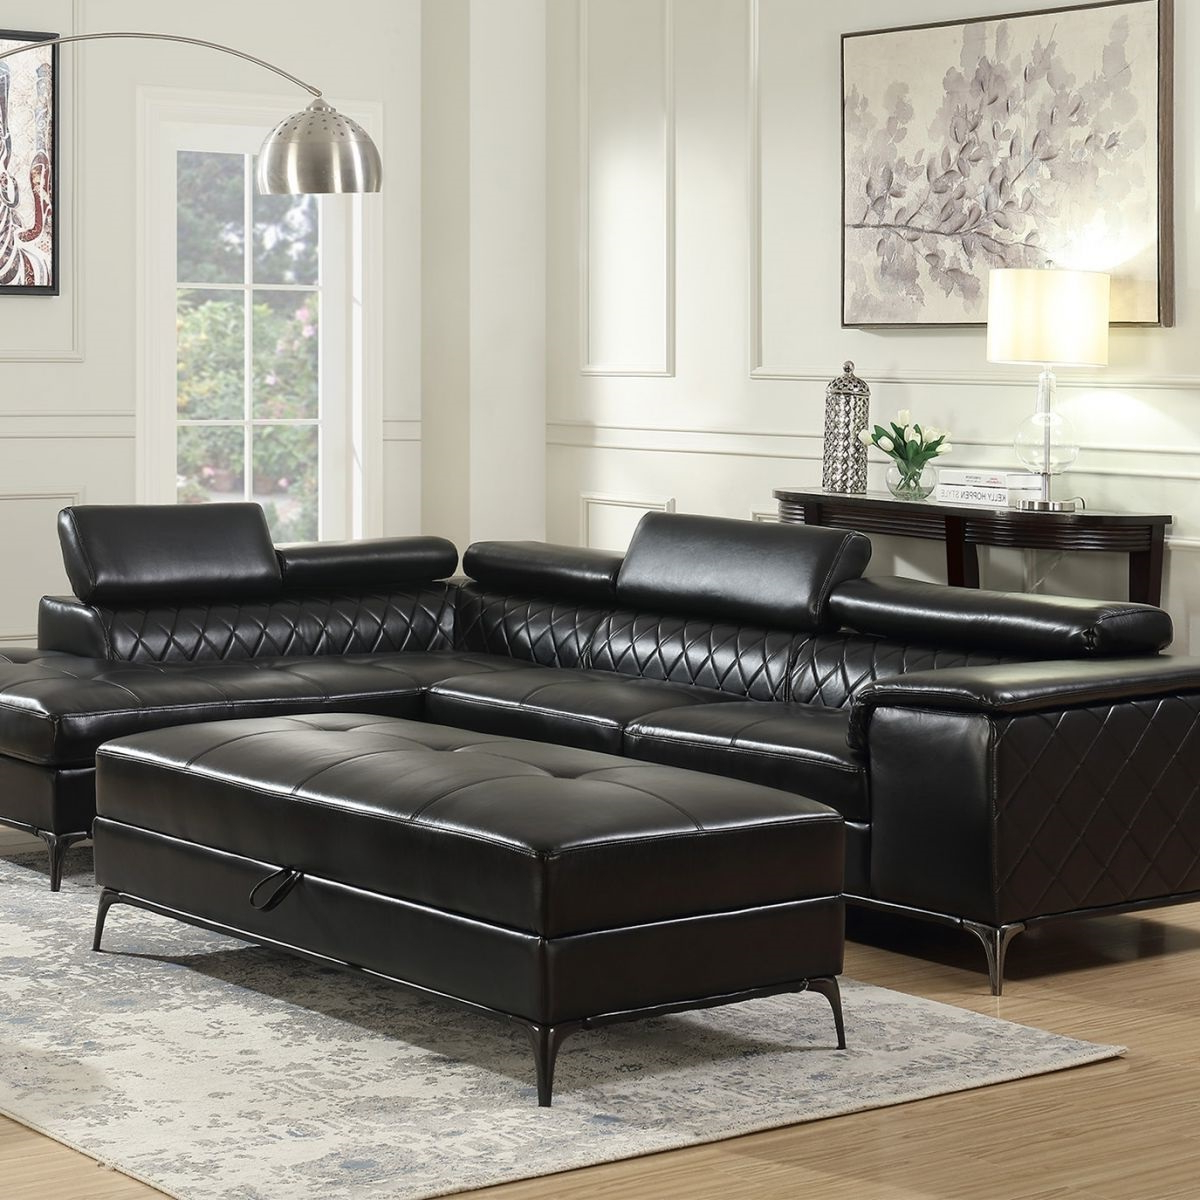 Badcock & More Throughout Cosmos Grey 2 Piece Sectionals With Raf Chaise (View 19 of 20)